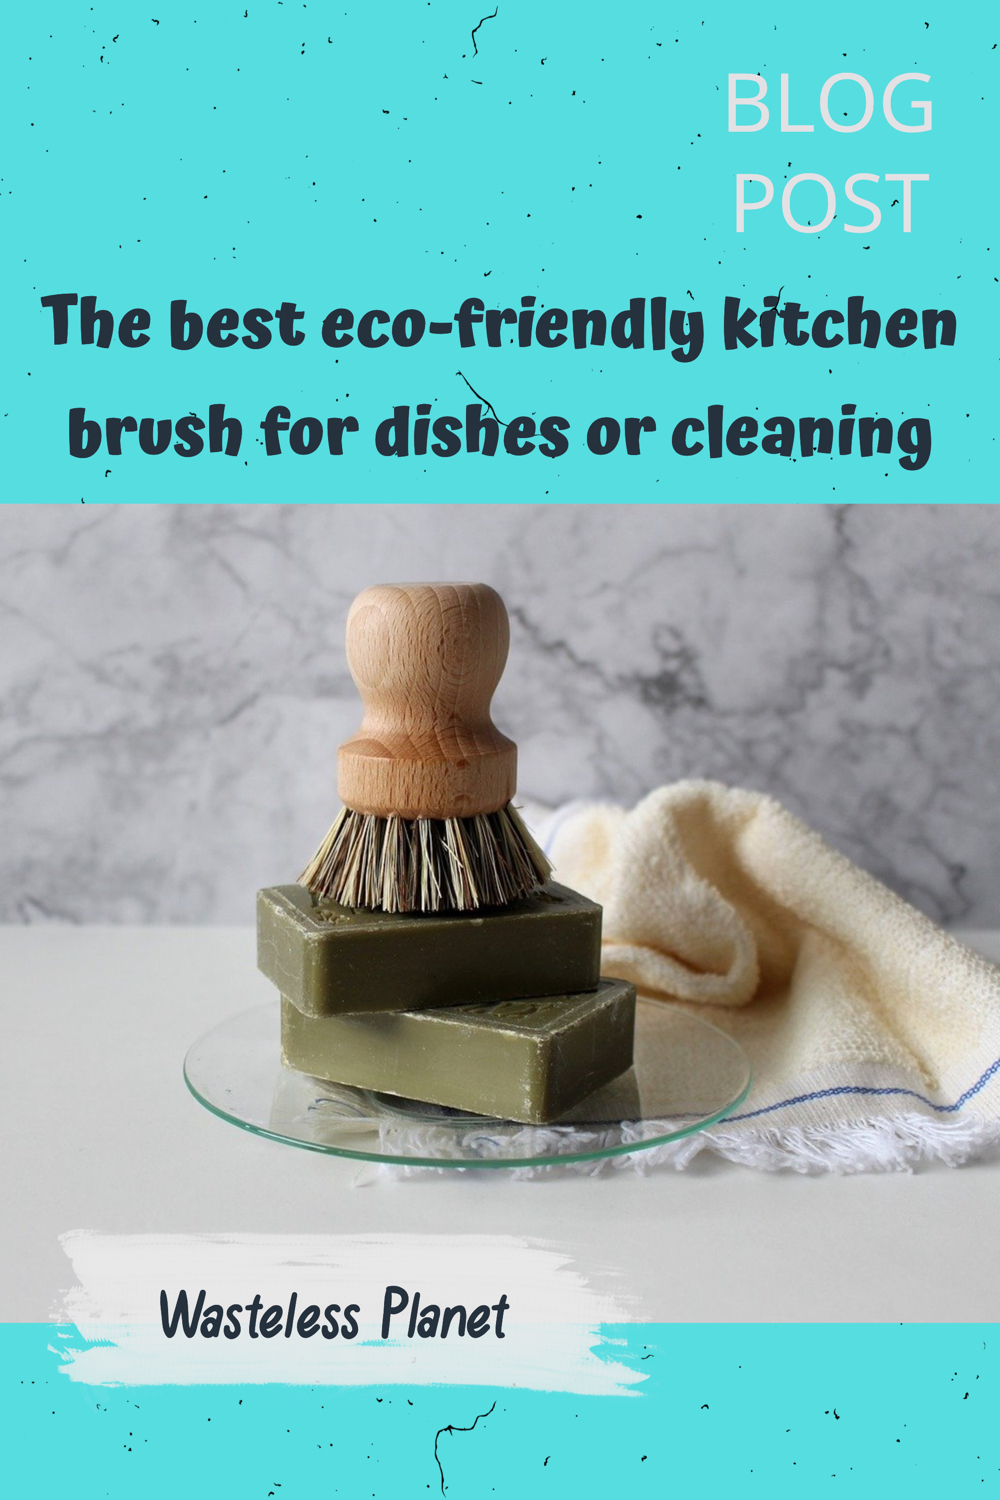 The best eco-friendly kitchen brush for dishes or cleaning